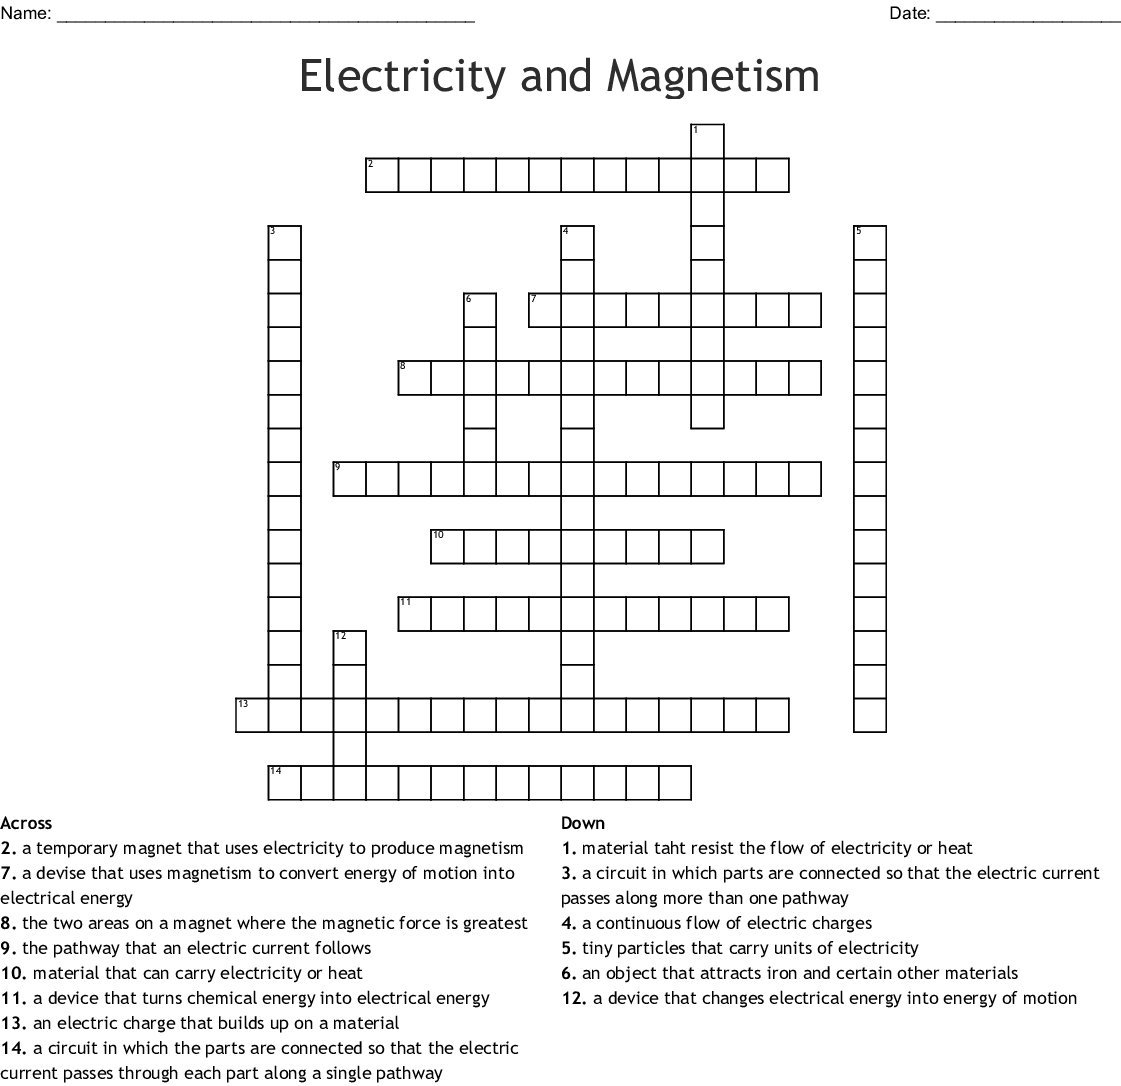 Electric Circuits And Electric Current Worksheet Answers